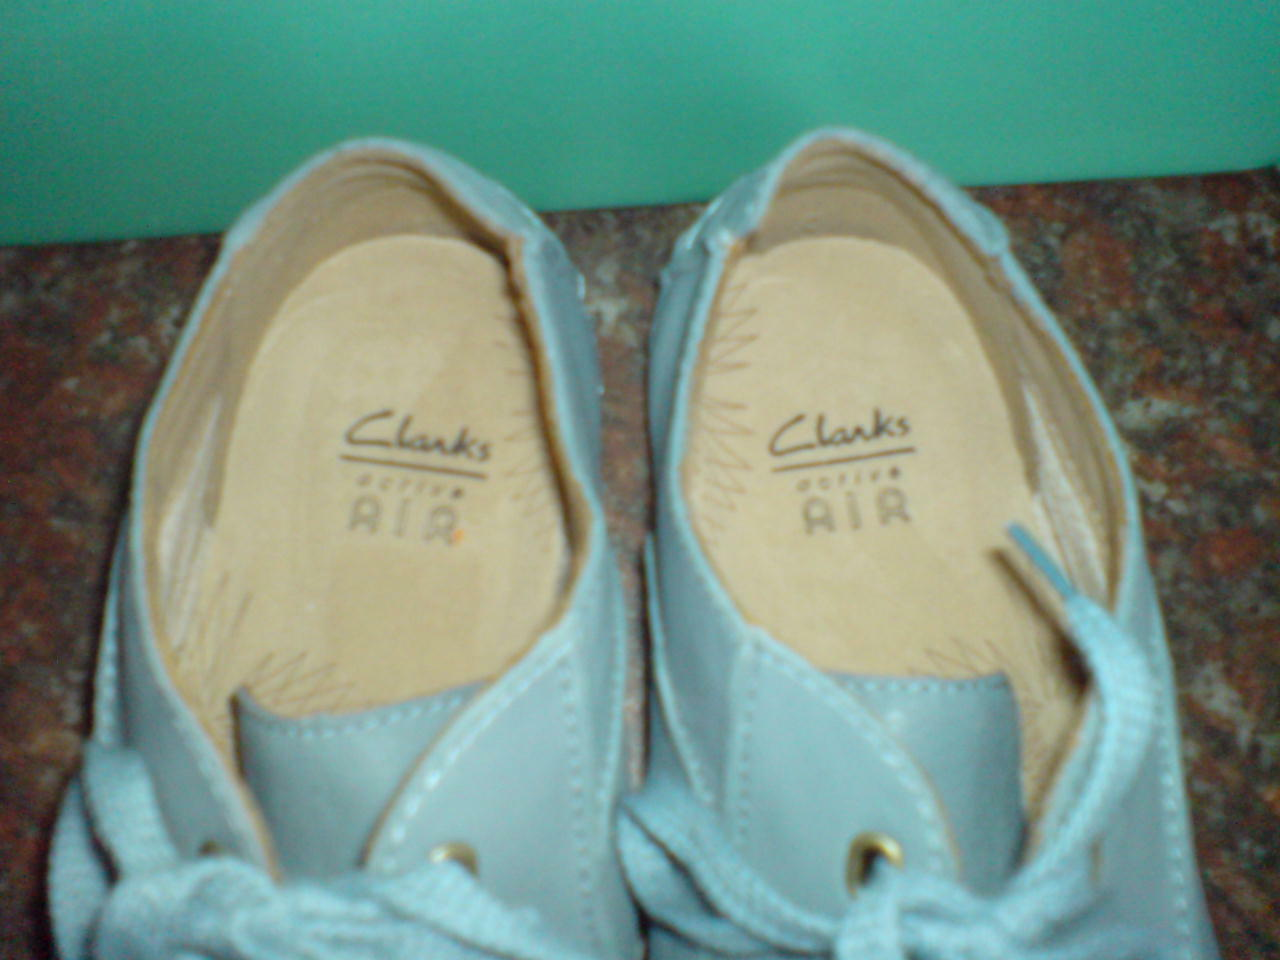 Clarks Damenschuhe FABULOUS ICONACTIVE AIR STRONG SOLE Blau Blau SOLE LEATHER  UK 5.5 c8a557